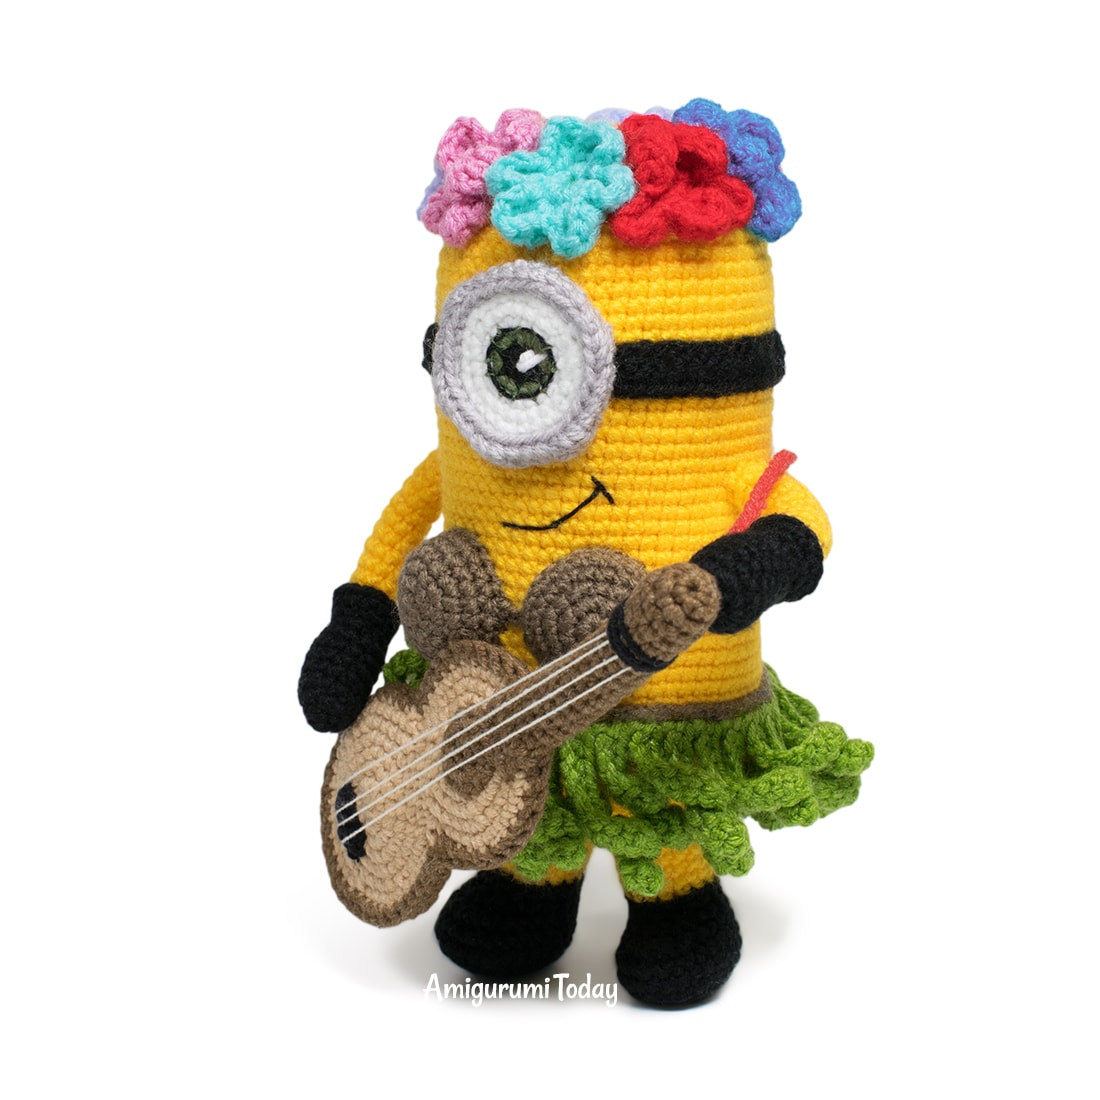 Free Amigurumi Hawaiian Minion Crochet Pattern